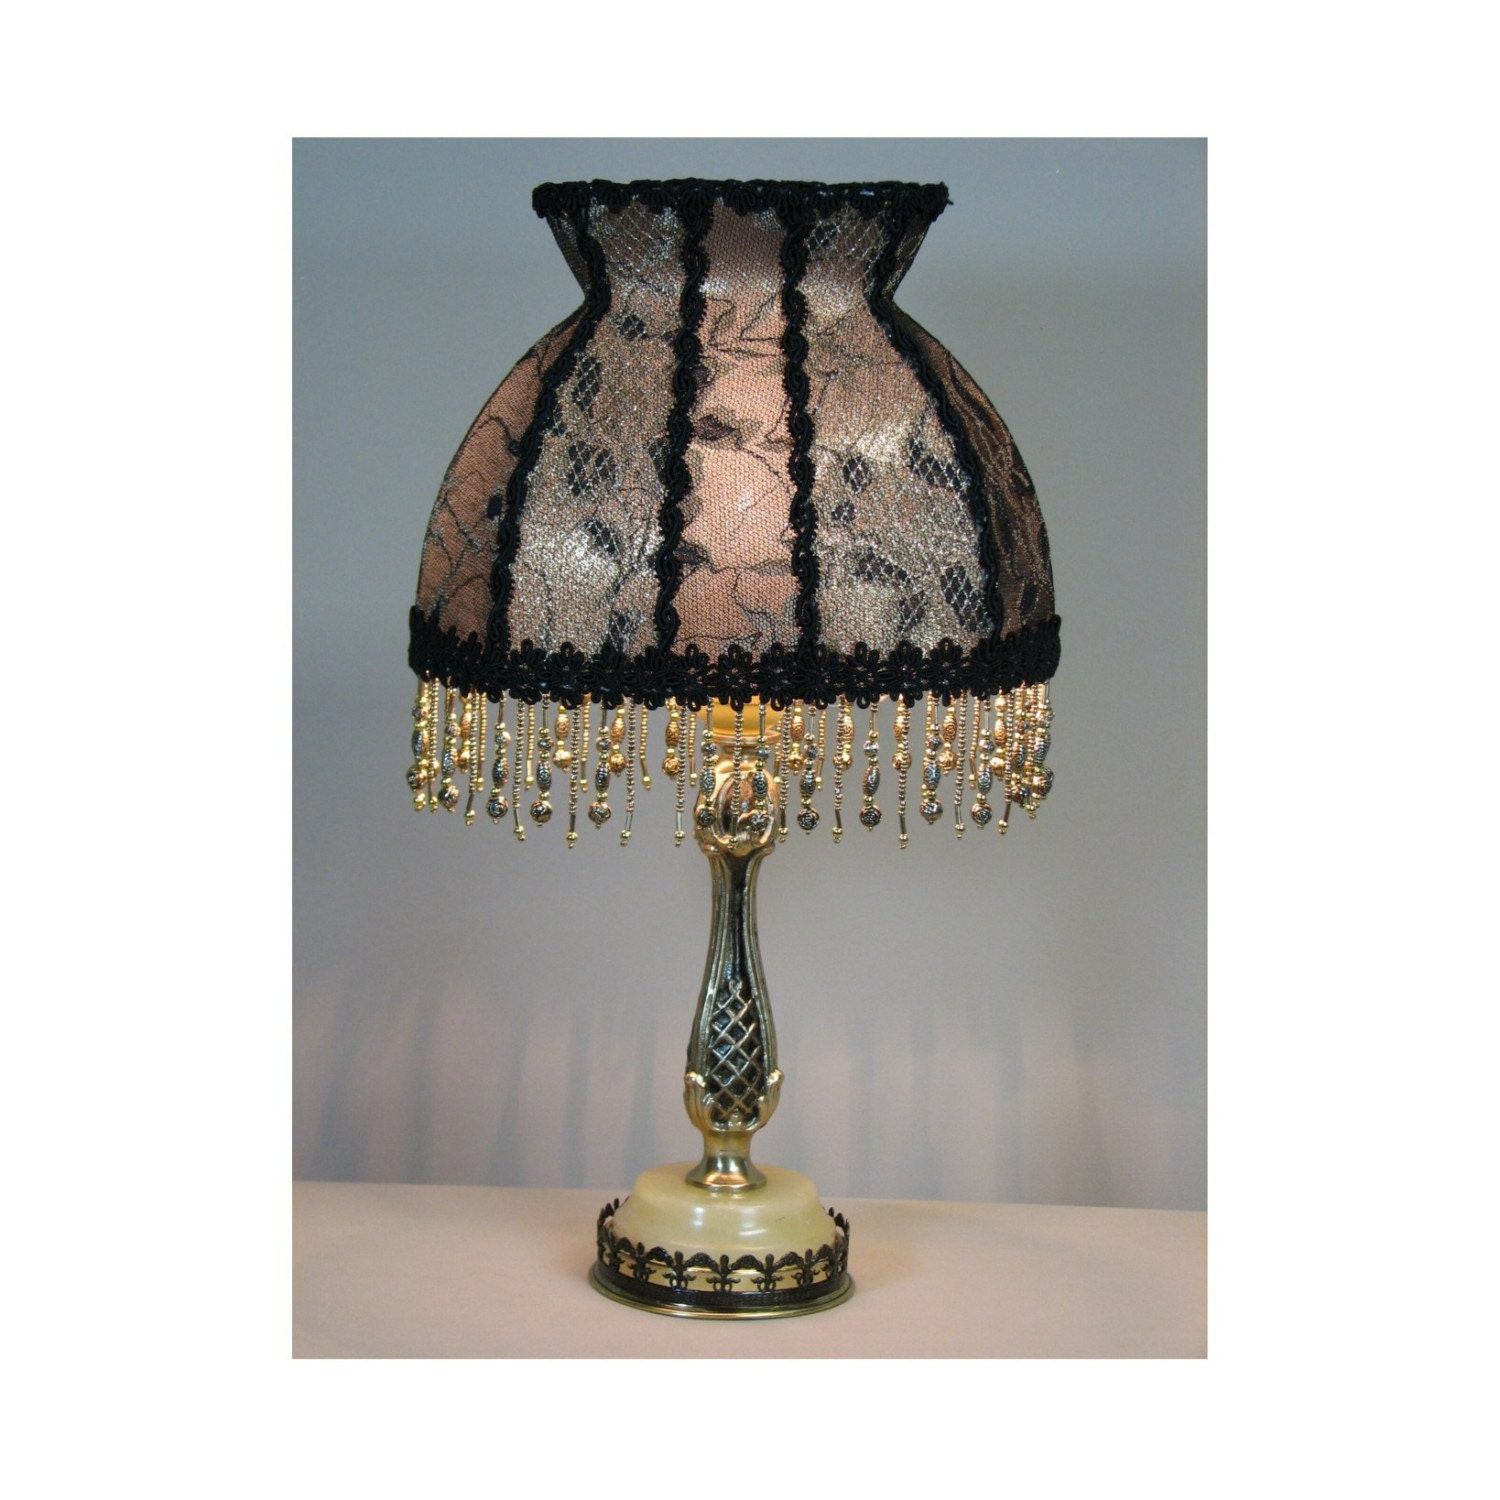 Vintage Table Lamp With Victorian Lamp Shade The Letter From